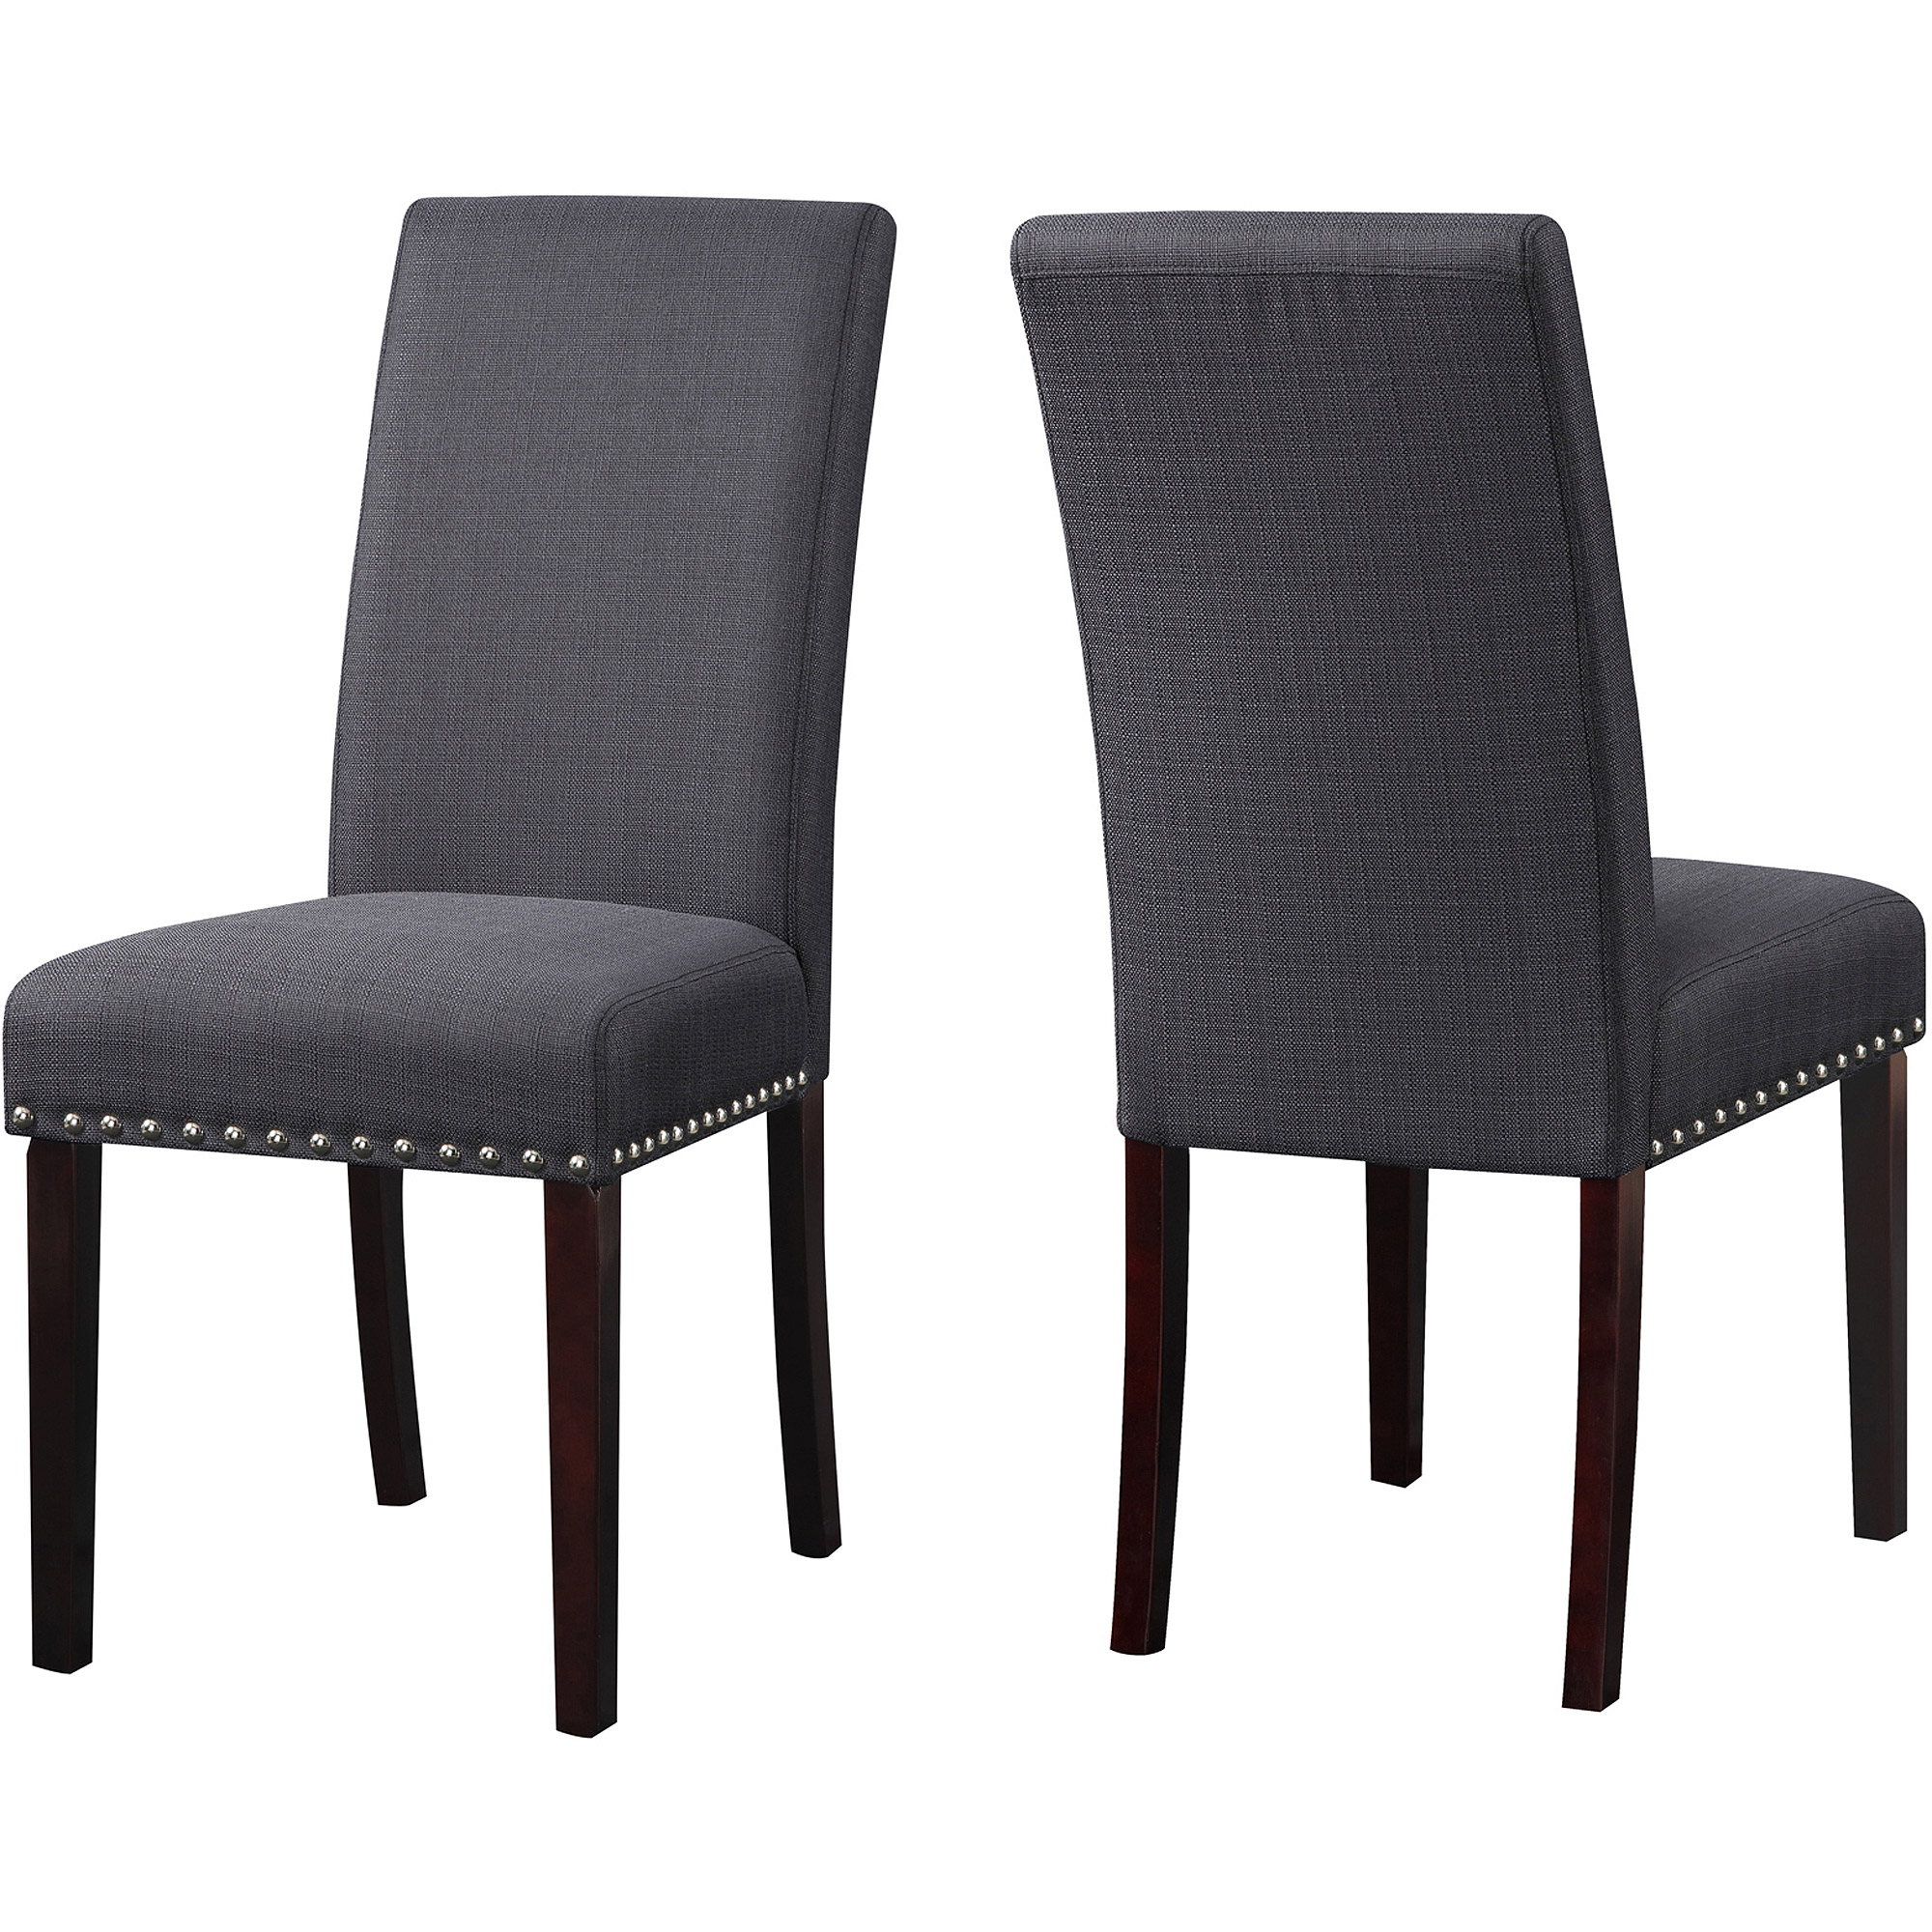 Dhi nice nail head upholstered dining chair set of 2 multiple colors walmart com